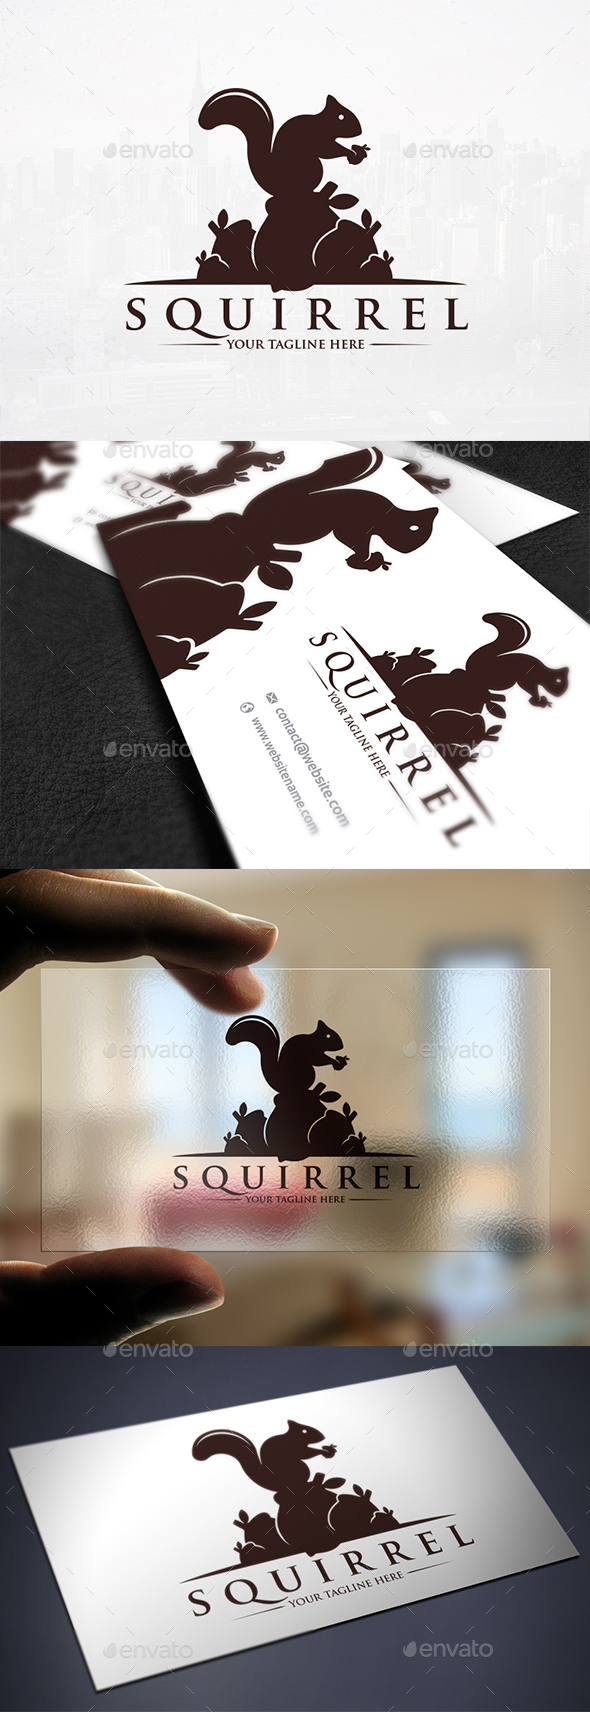 Squirrel Food Logo Template - Animals Logo Templates